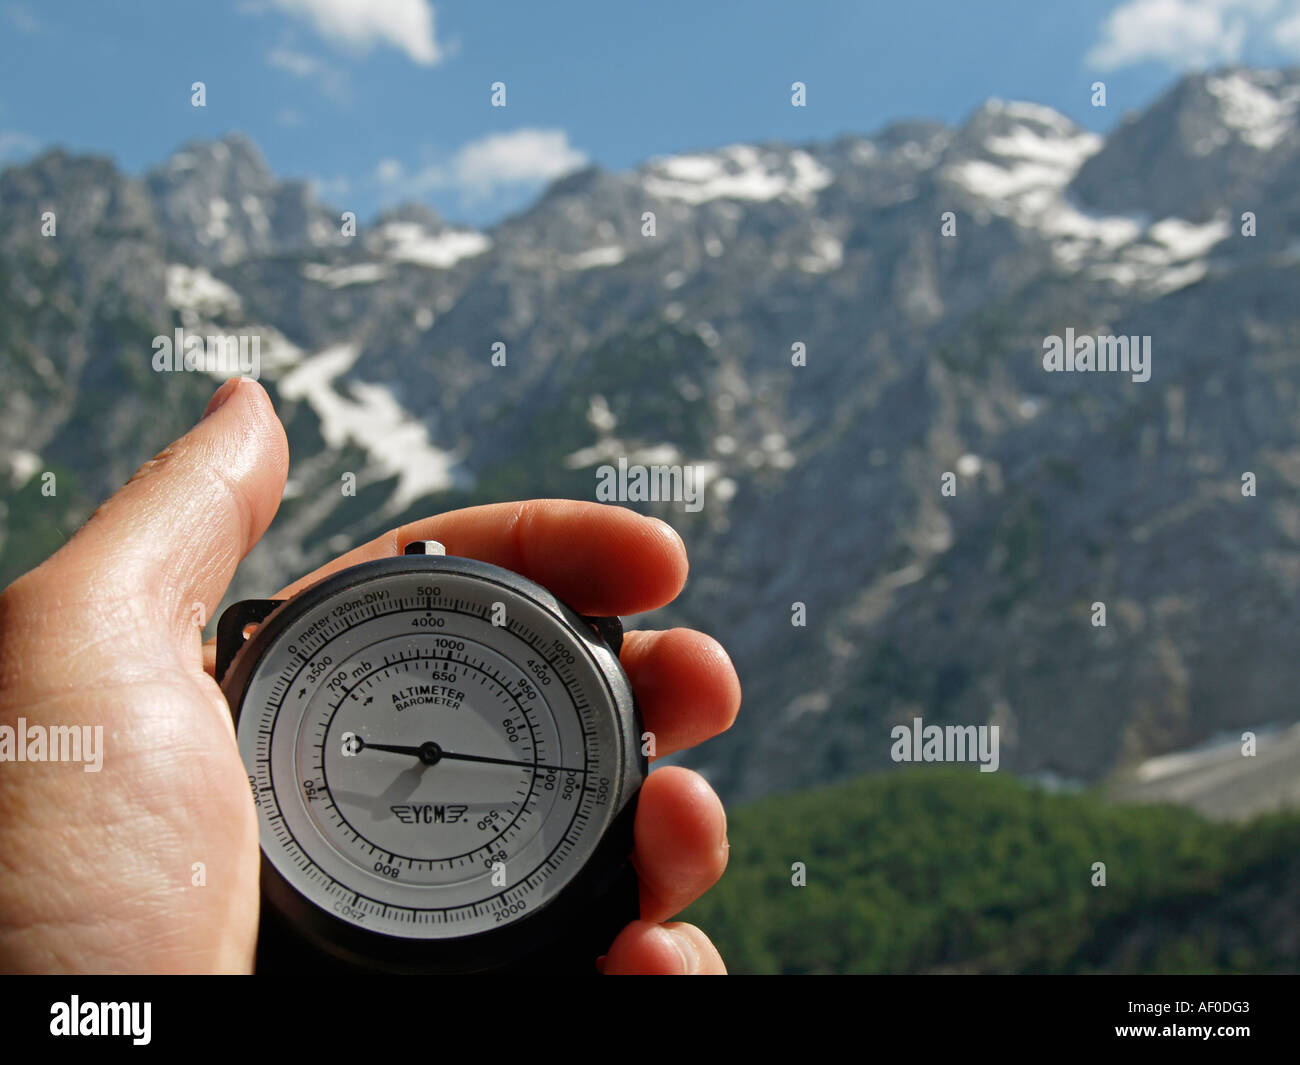 MR hand holding altimeter showing a height of 1500 meters in front of mountains with snow covered tops - Stock Image